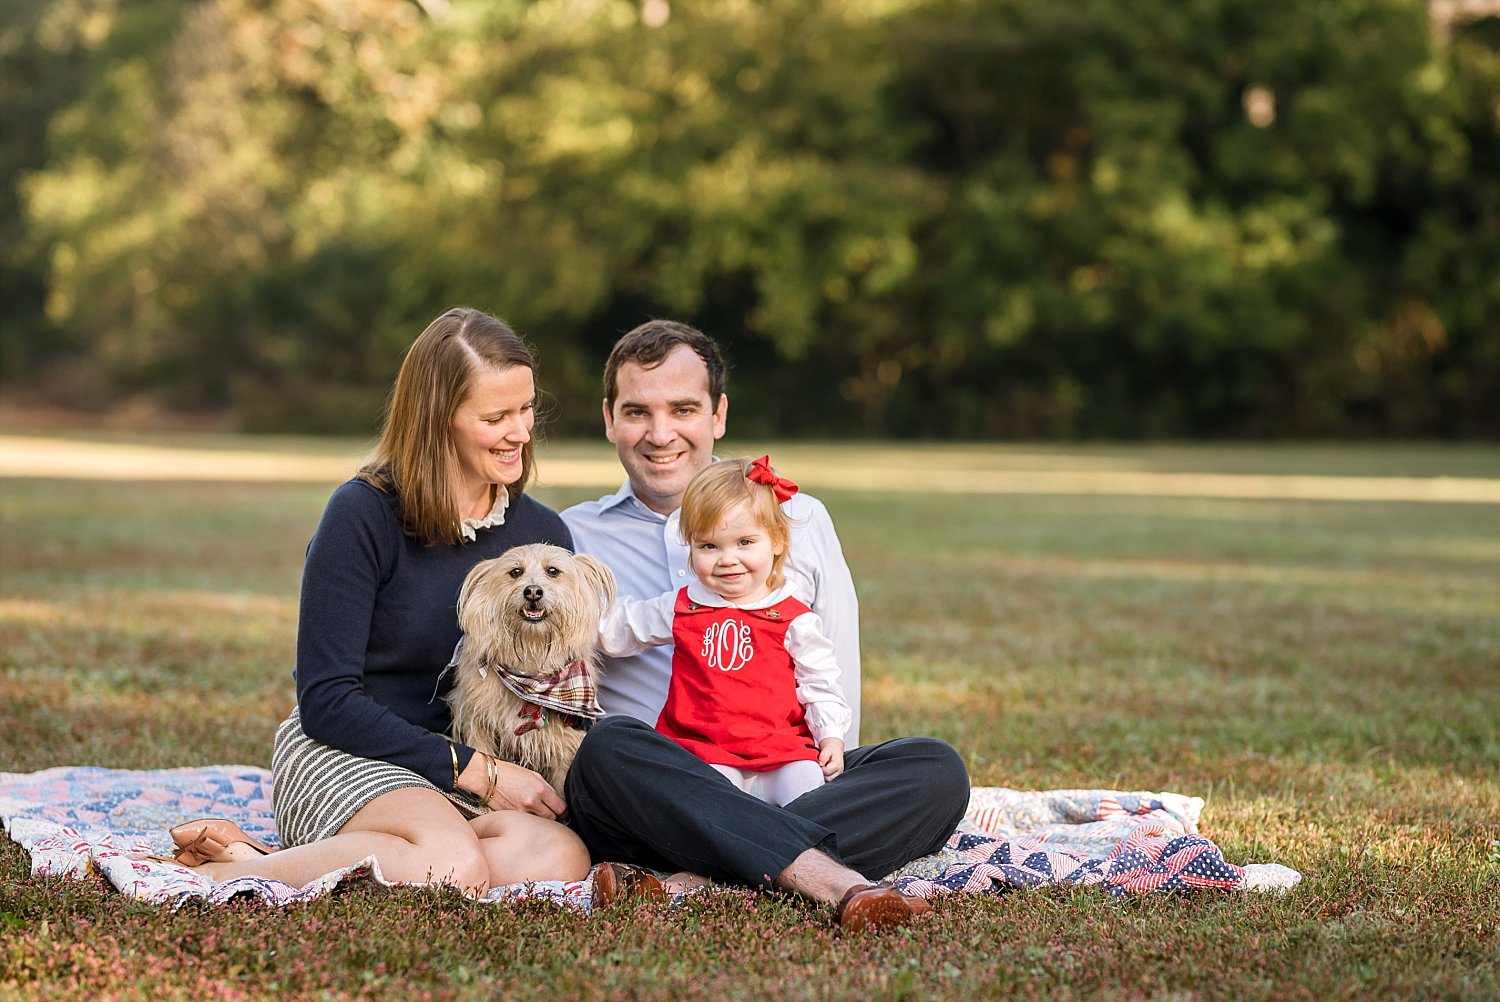 Family of 3 with dog on blanket in park